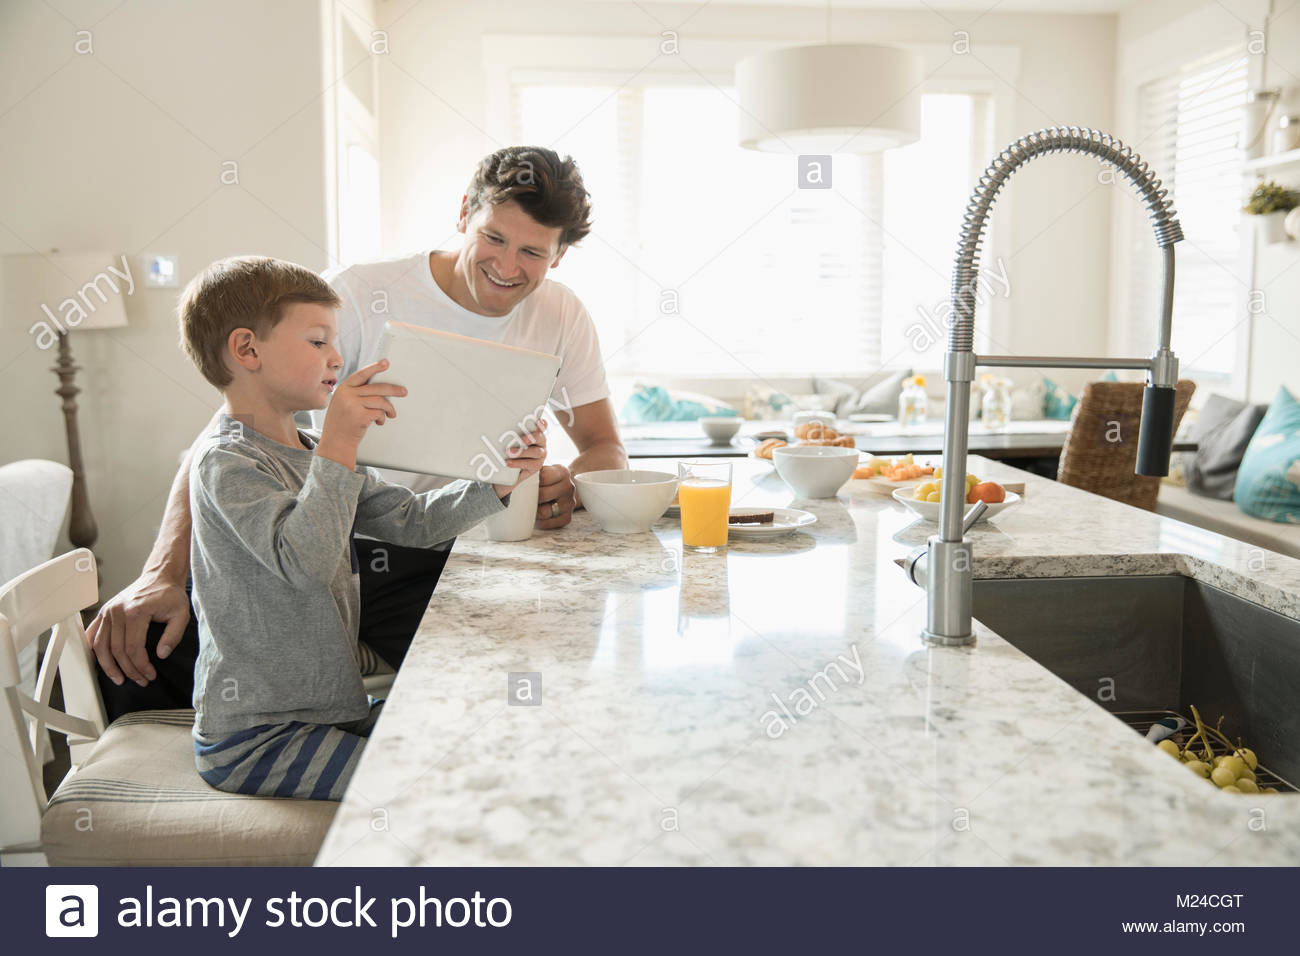 Father and son eating breakfast and using digital tablet at kitchen island Stock Photo